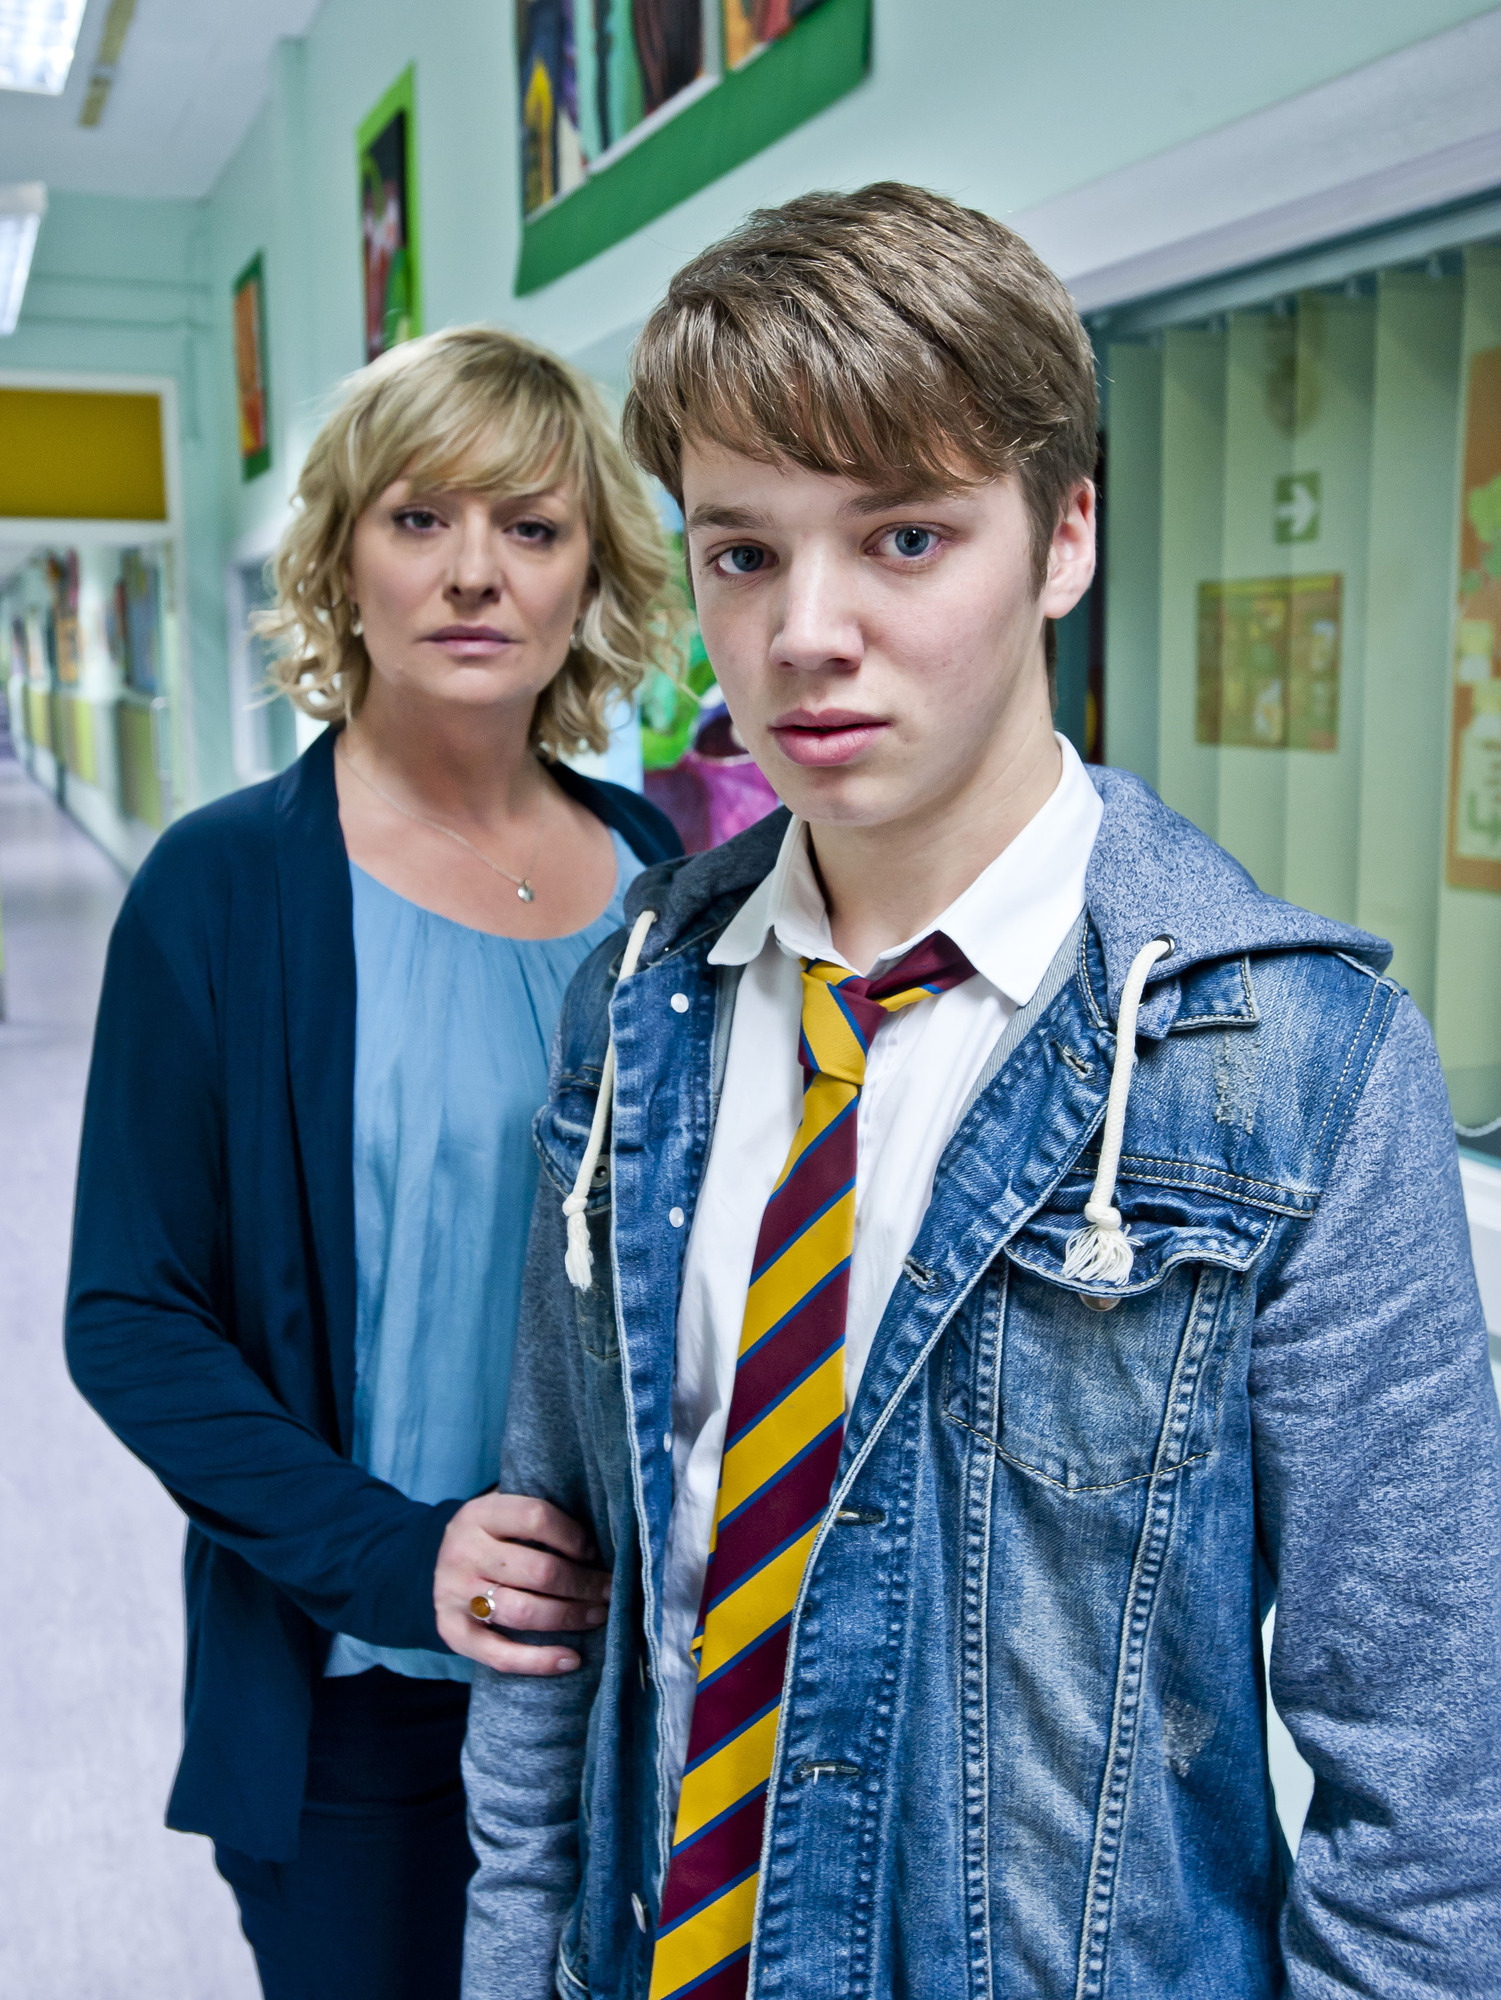 Waterloo Road final series continues: 7 teasers from episode 5